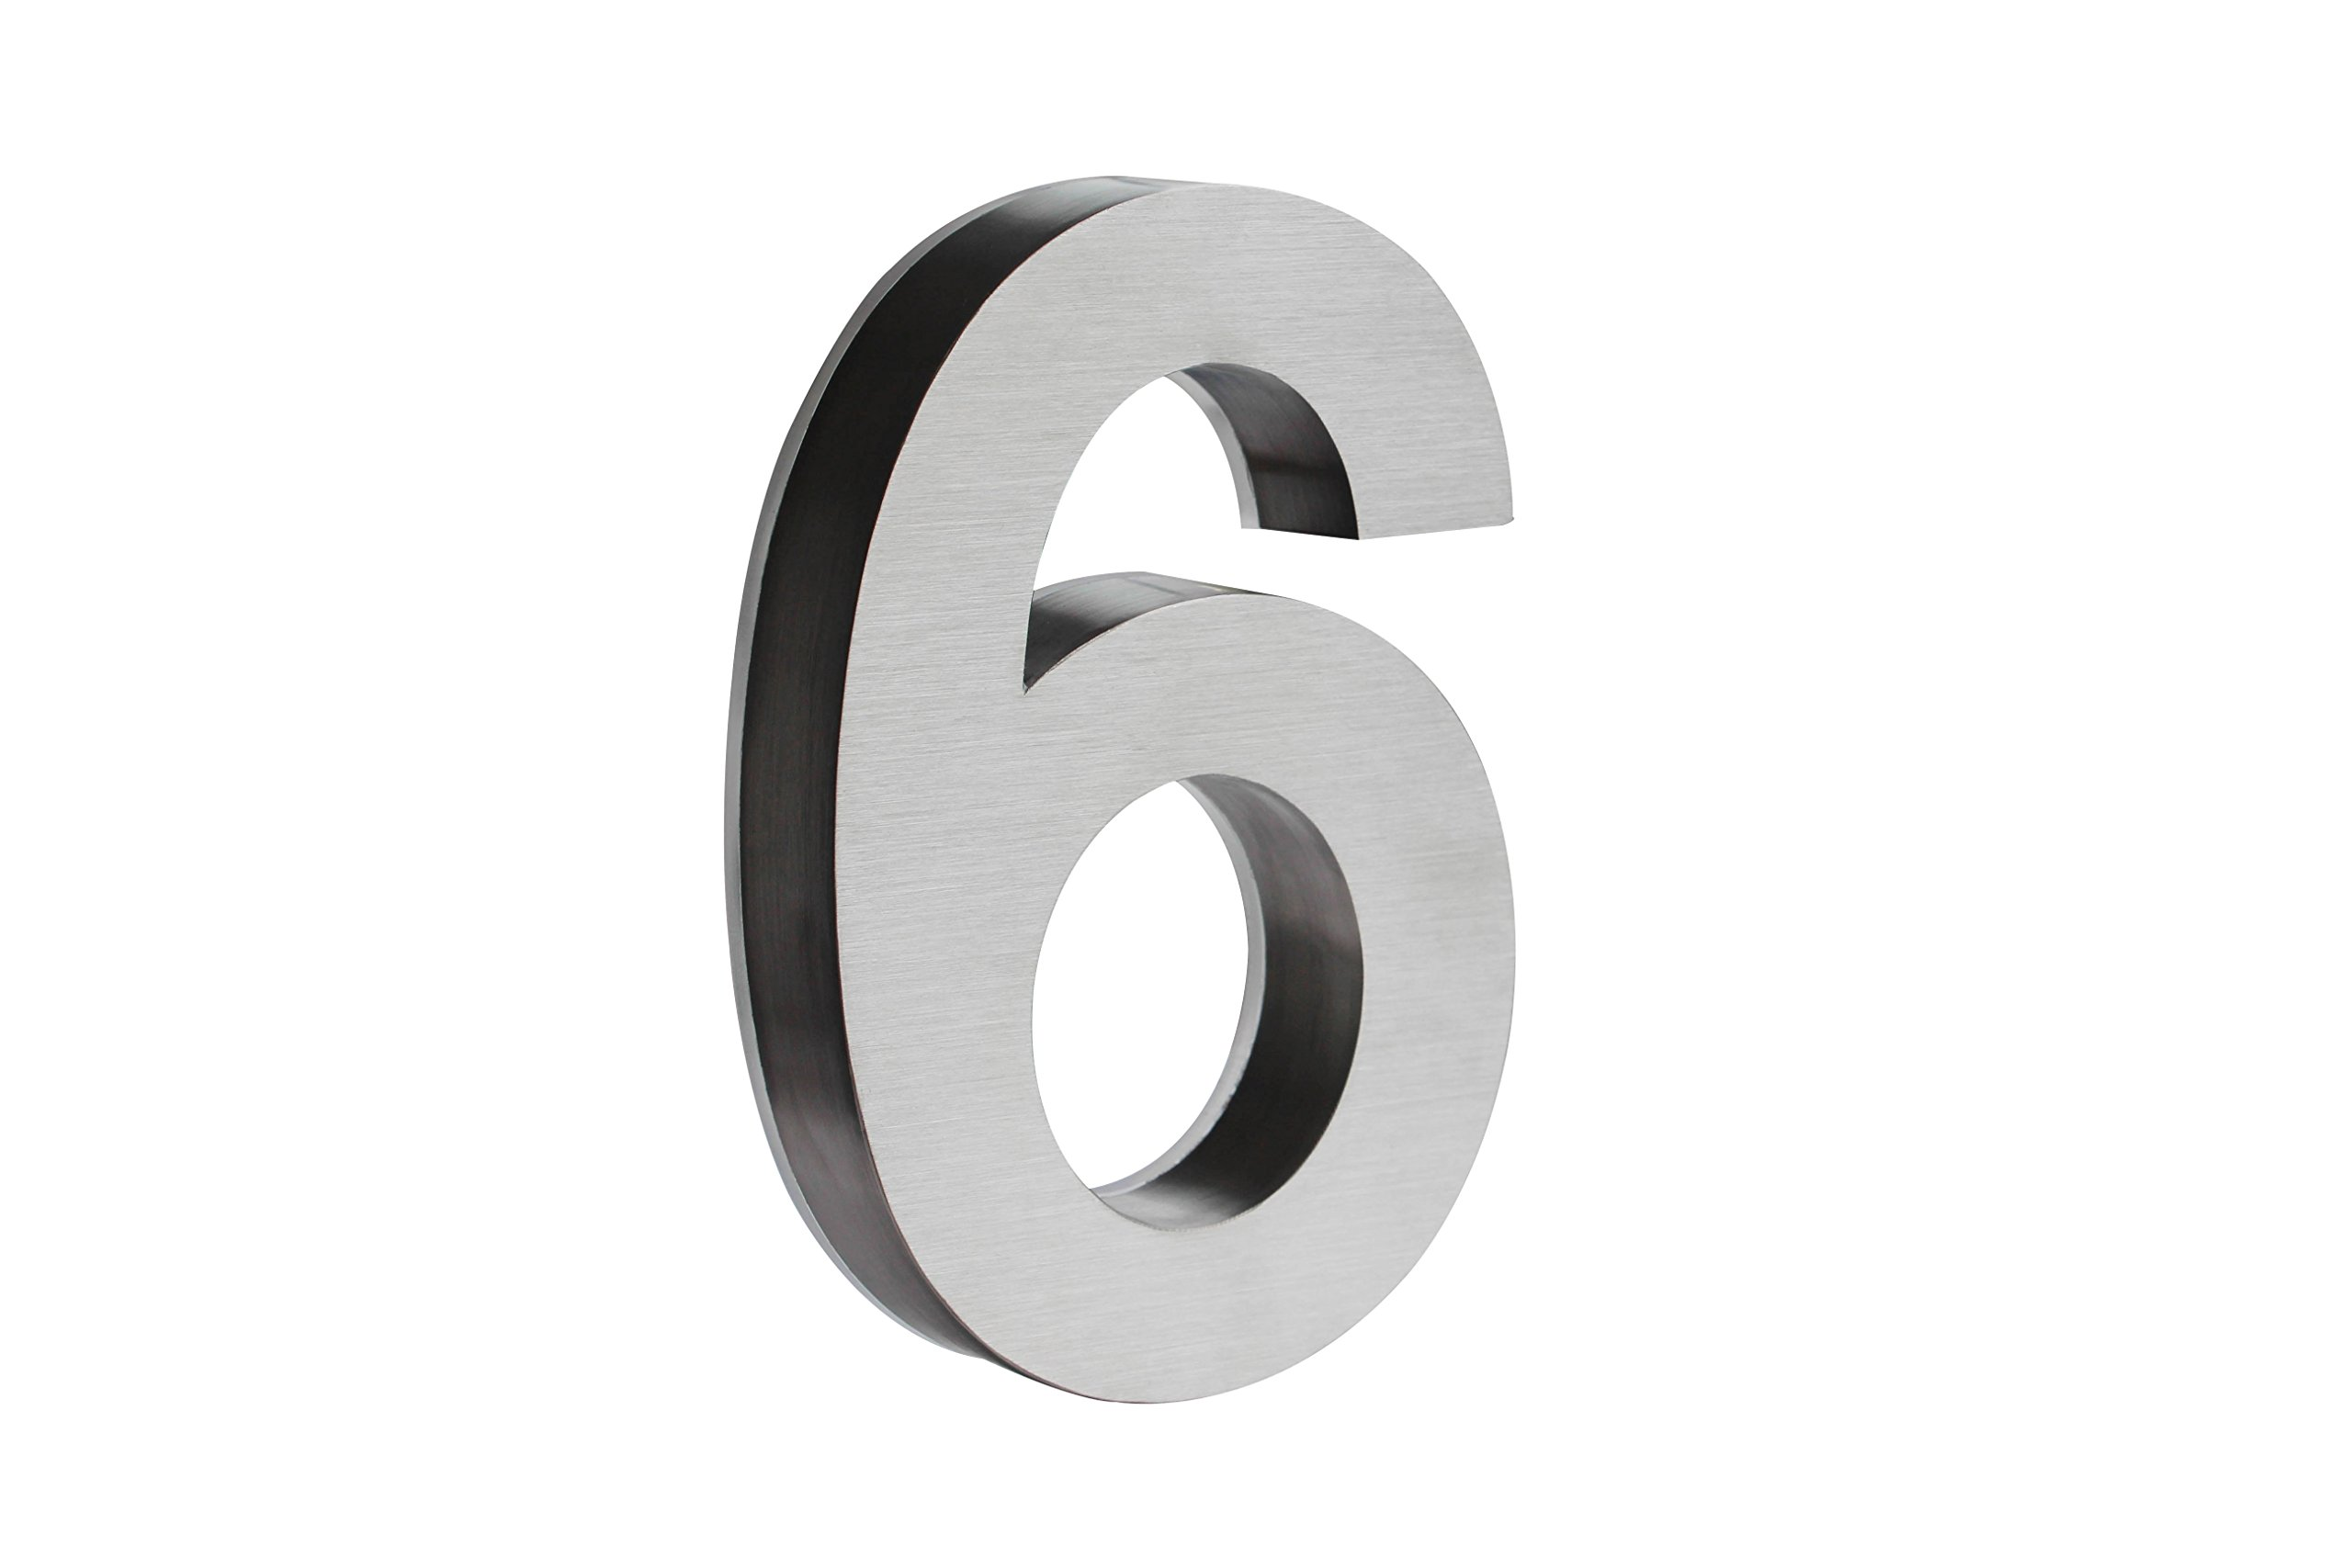 Backlit LED House Numbers (8 Inch WHITE) Big, Modern Address Signs for Homes | Soft, Exterior Glow | Brushed Stainless-Steel Finish | Weather Resistant, Durable, Wired | By JELSCO (6)